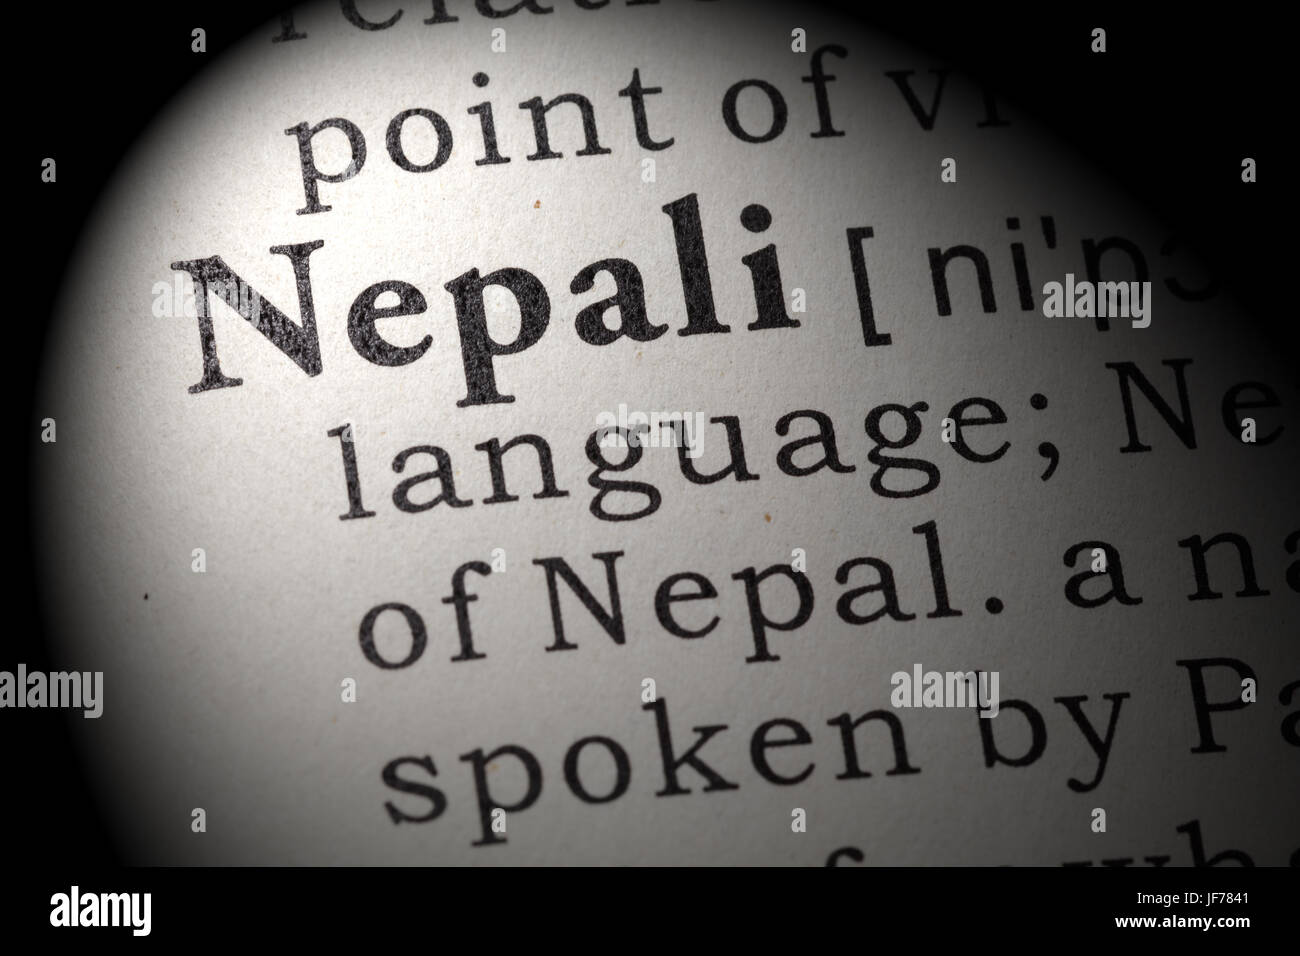 Nepali Language Stock Photos & Nepali Language Stock Images